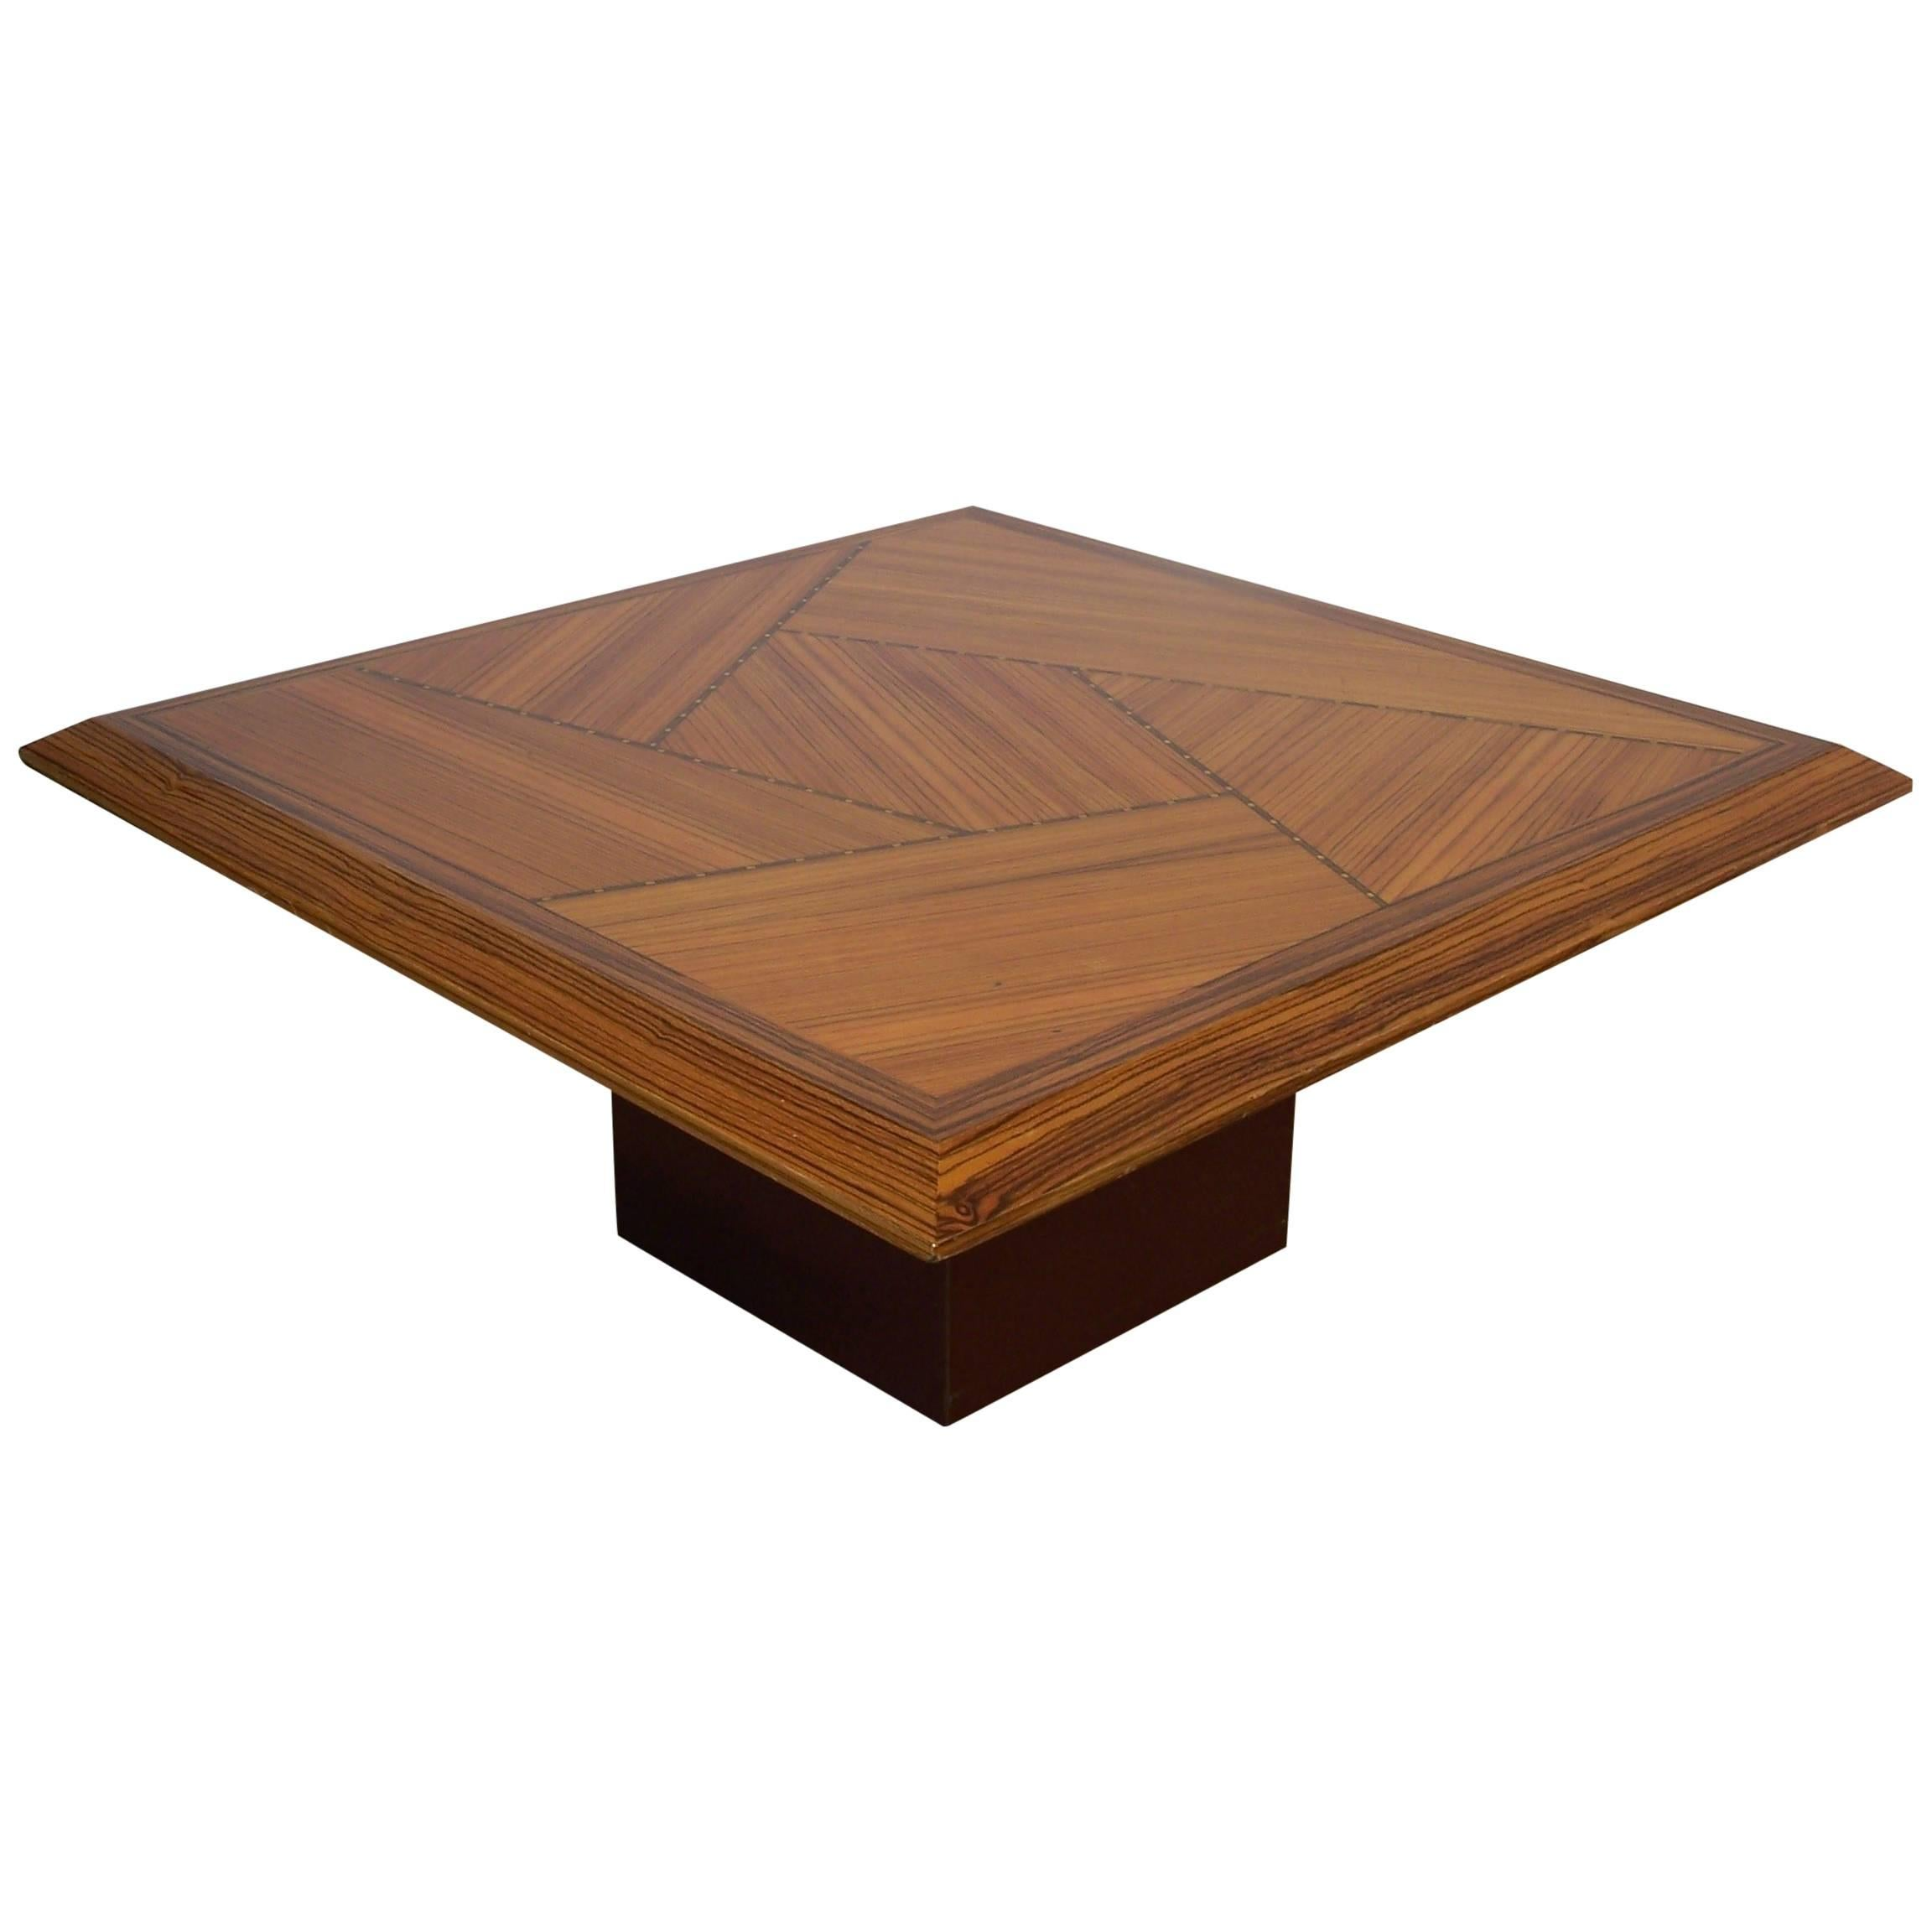 Wooden Marquetry Italian Design Coffee Table